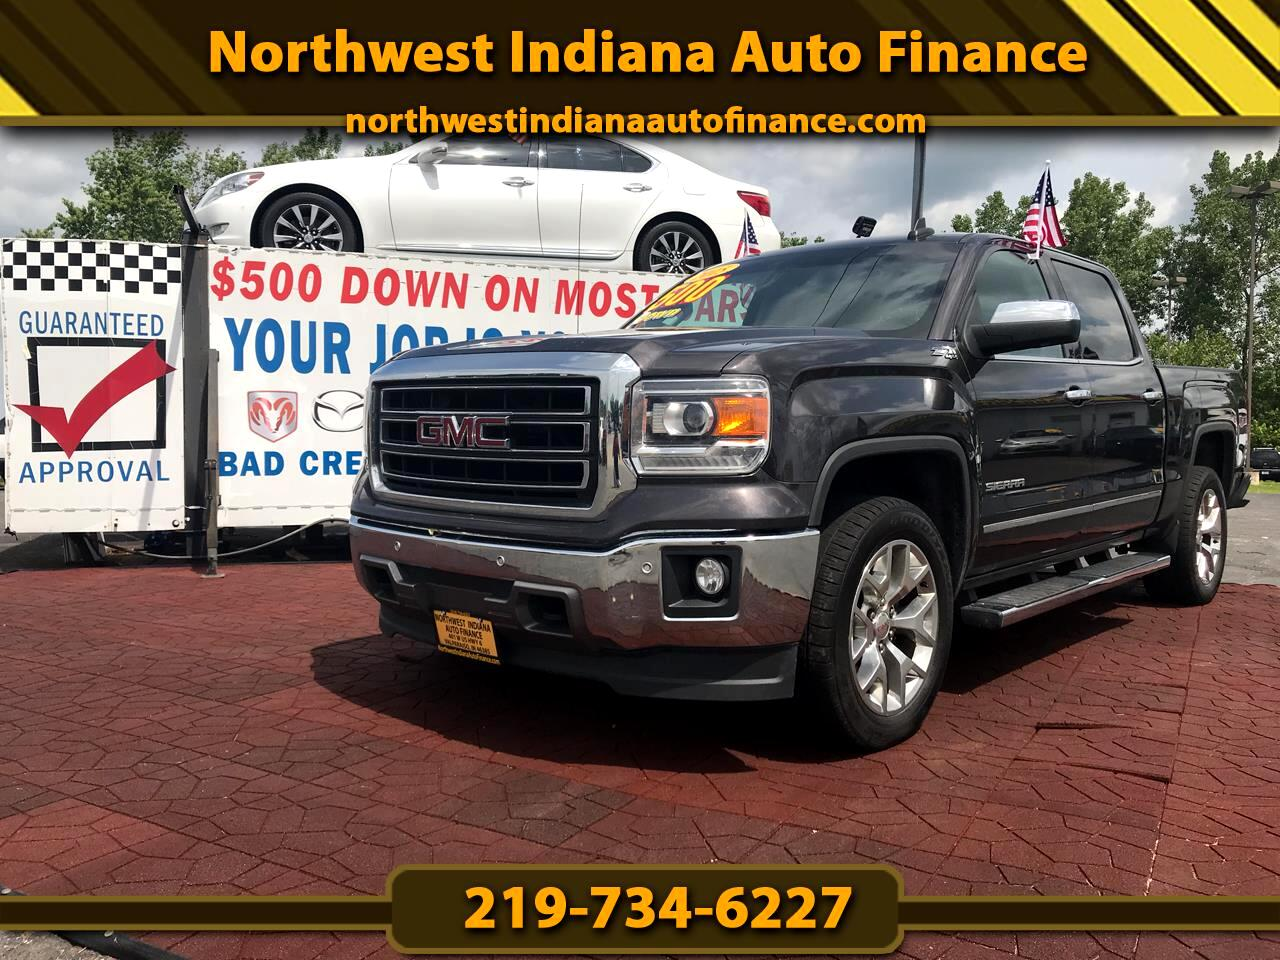 Sierra Auto Finance >> Used 2015 Gmc Sierra 1500 For Sale In Valparaiso In 46385 Northwest